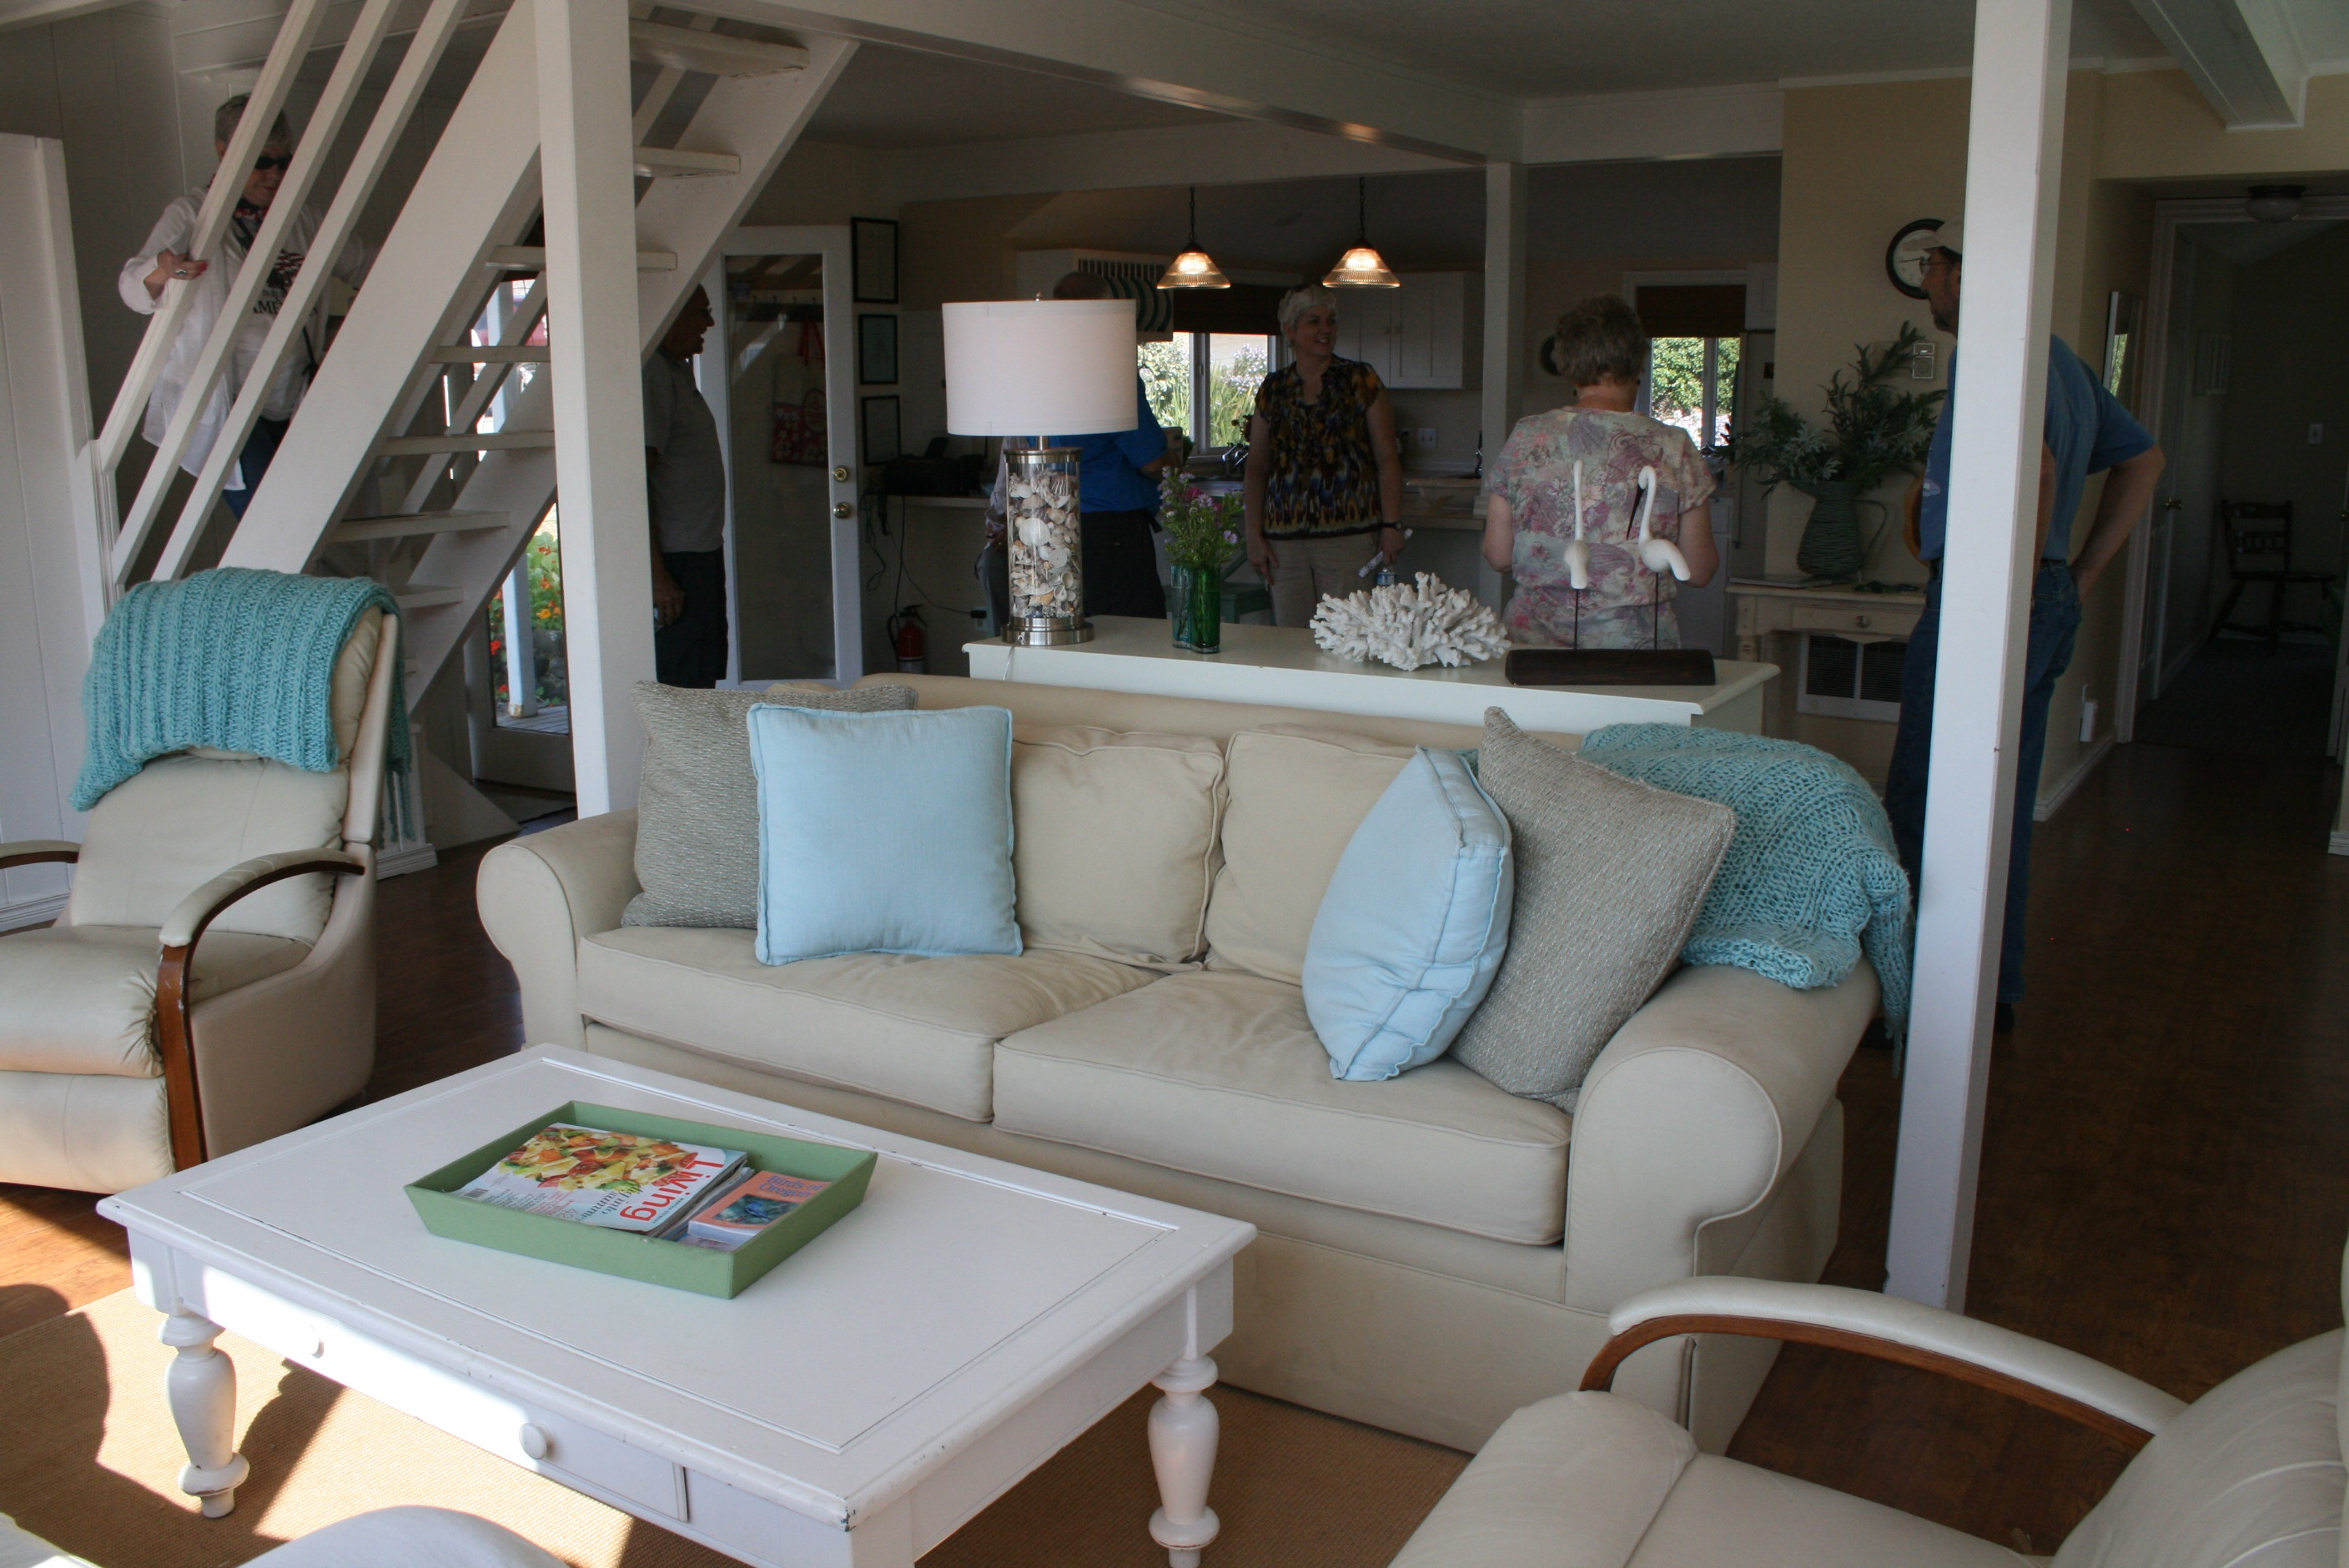 A beachy cottage interior of one of the homes featured in Oregon Home Magazine in 2012.